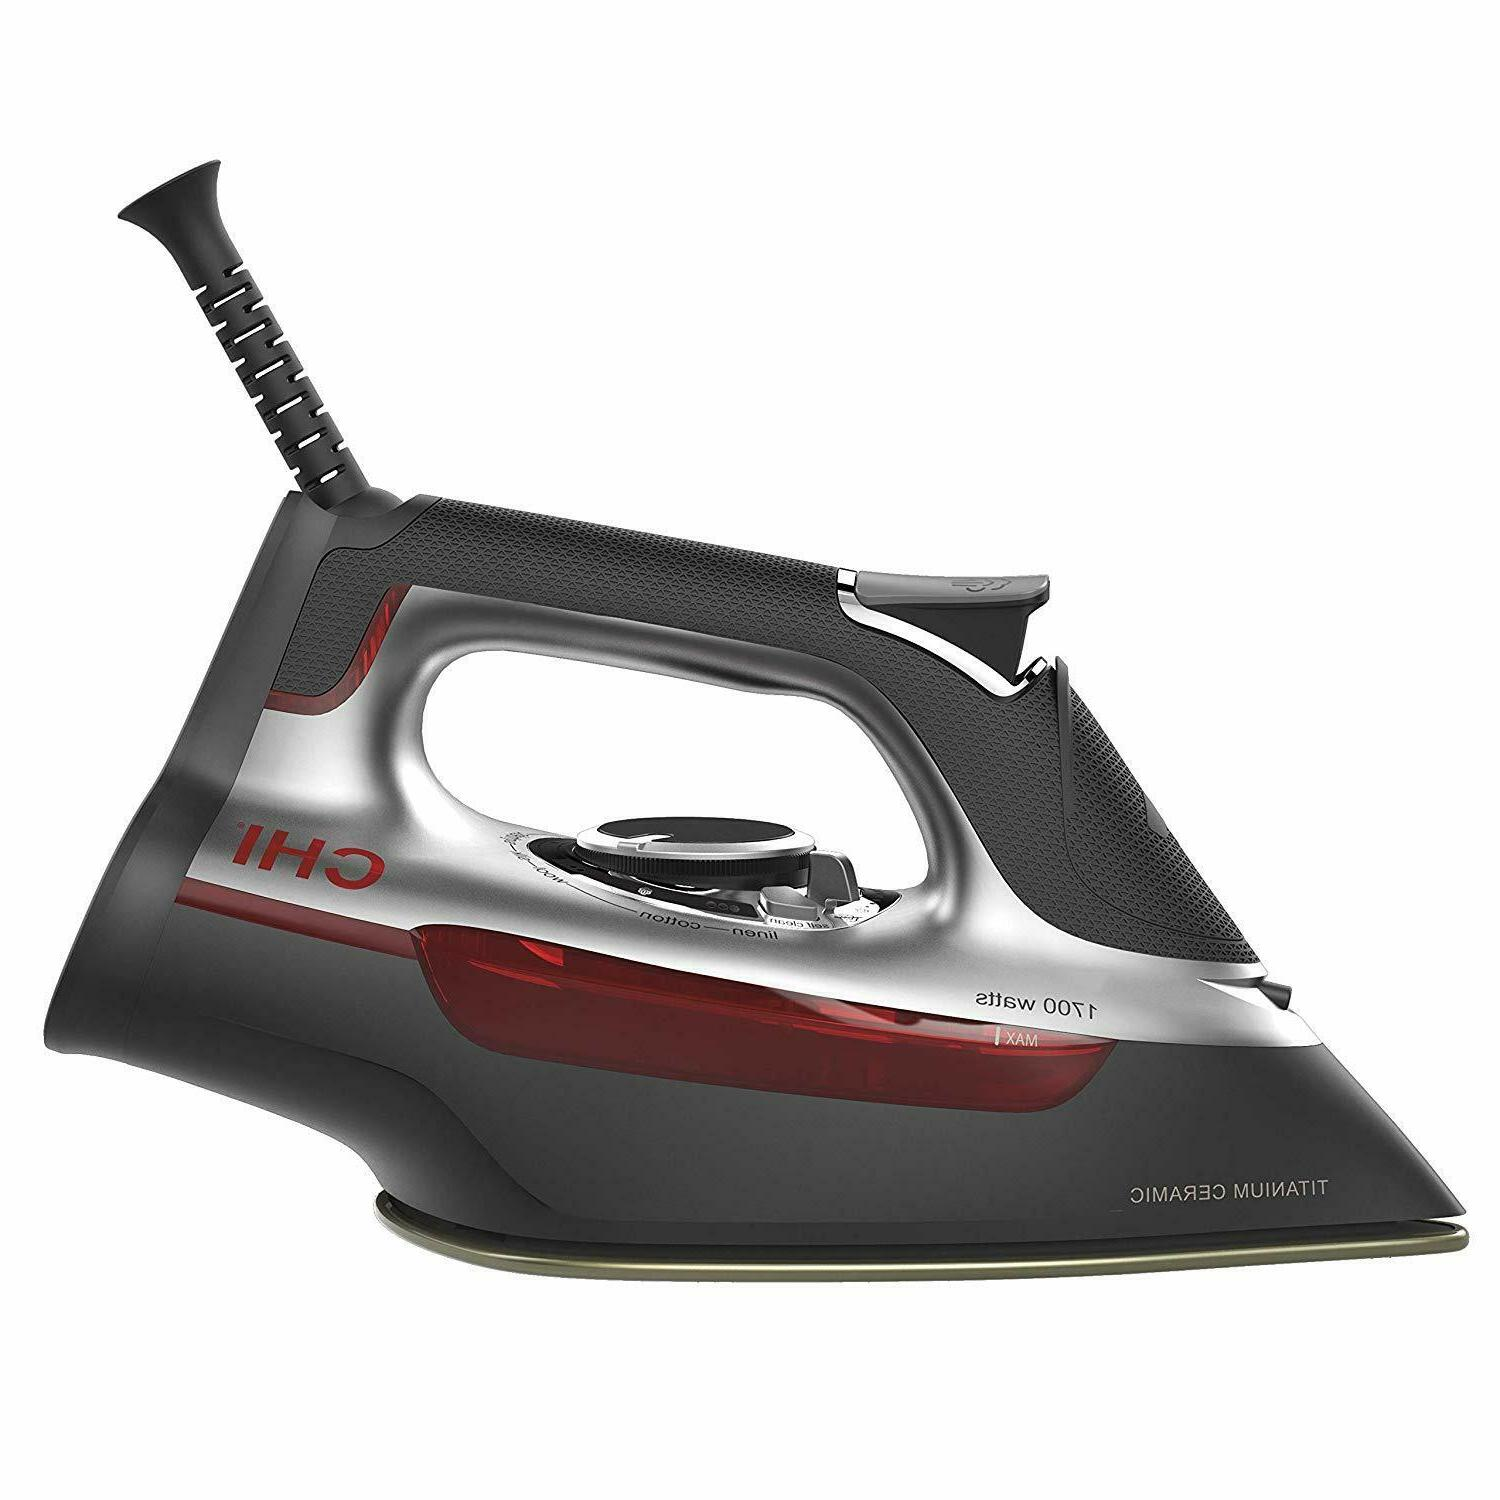 CHI  Steam Iron With Titanium Infused Ceramic Soleplate  Ove